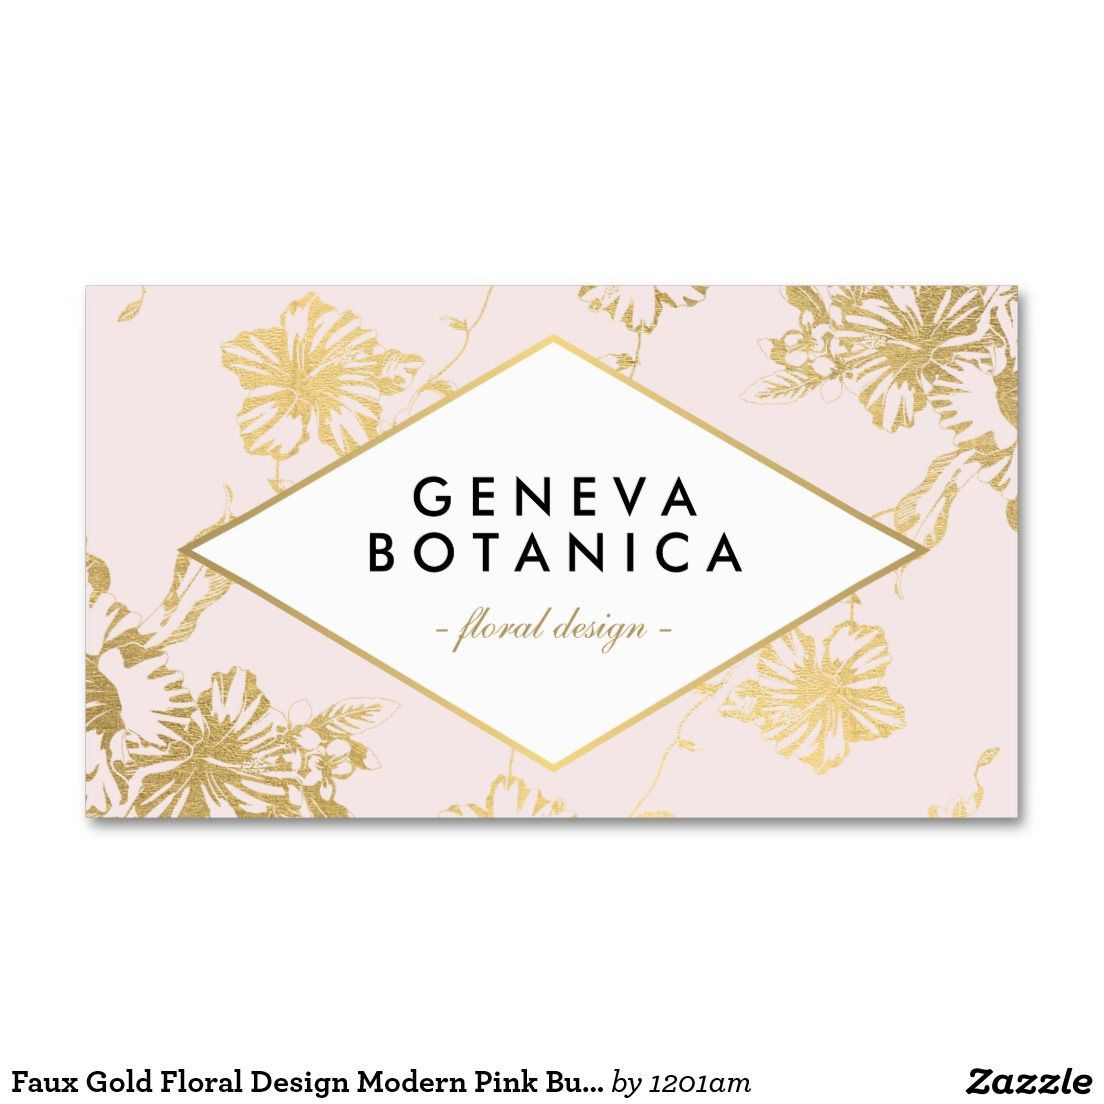 Faux Gold Floral Design Modern Pink Business Card for Event ...